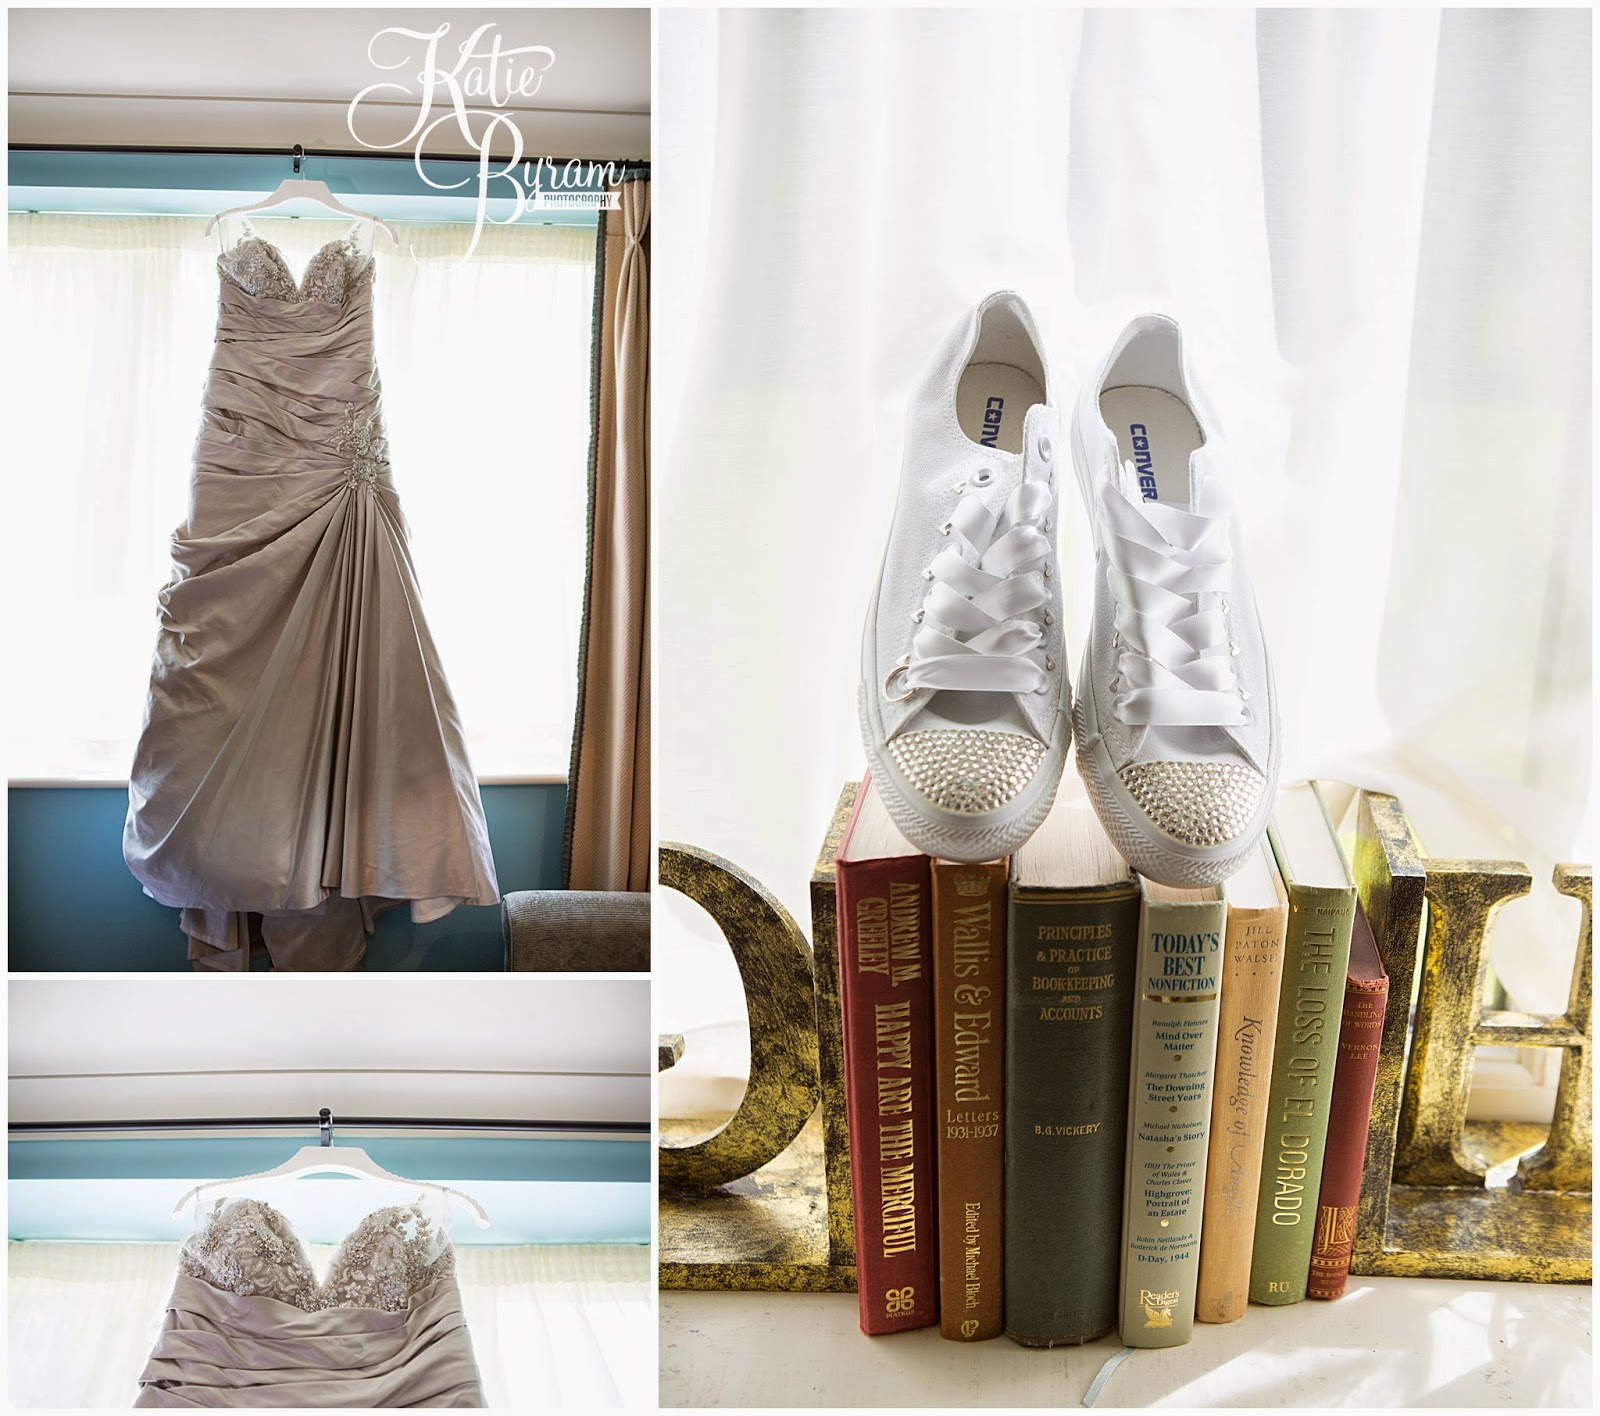 silver wedding dress, converse wedding, two bride wedding, lesbian wedding, lgbt wedding, gisborough hall wedding, north yorkshire wedding photographer, katie byram photographer, same-sex couples, bex bridal, elizabeth george bridal, north yorkshire wedding venues